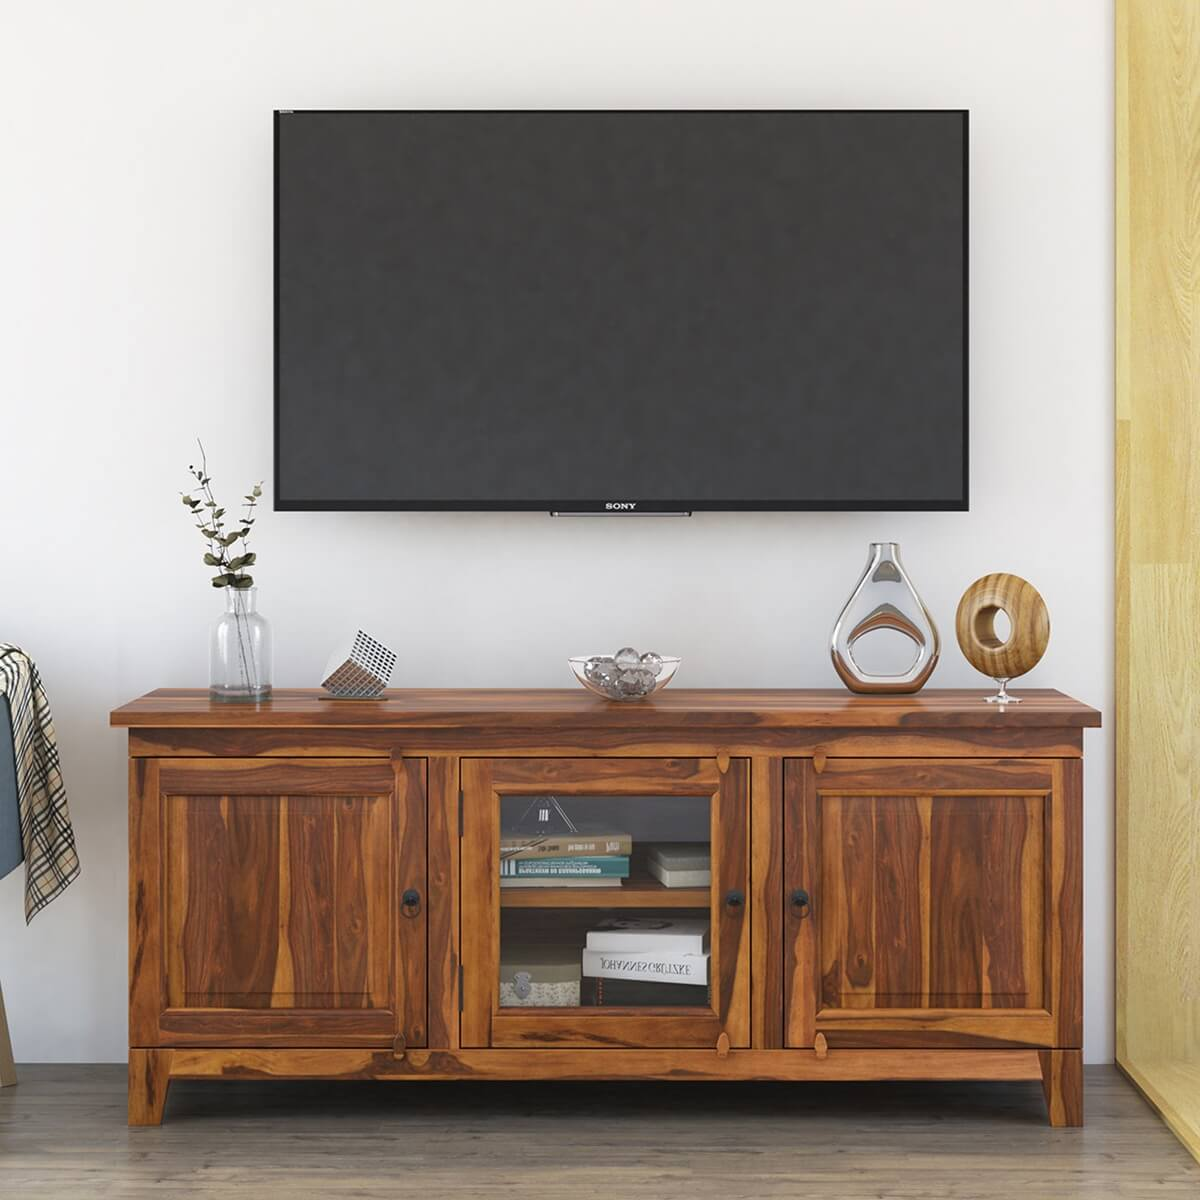 Wood Media Console Furniture ~ Rustic media console large solid wood tv stand cabinet